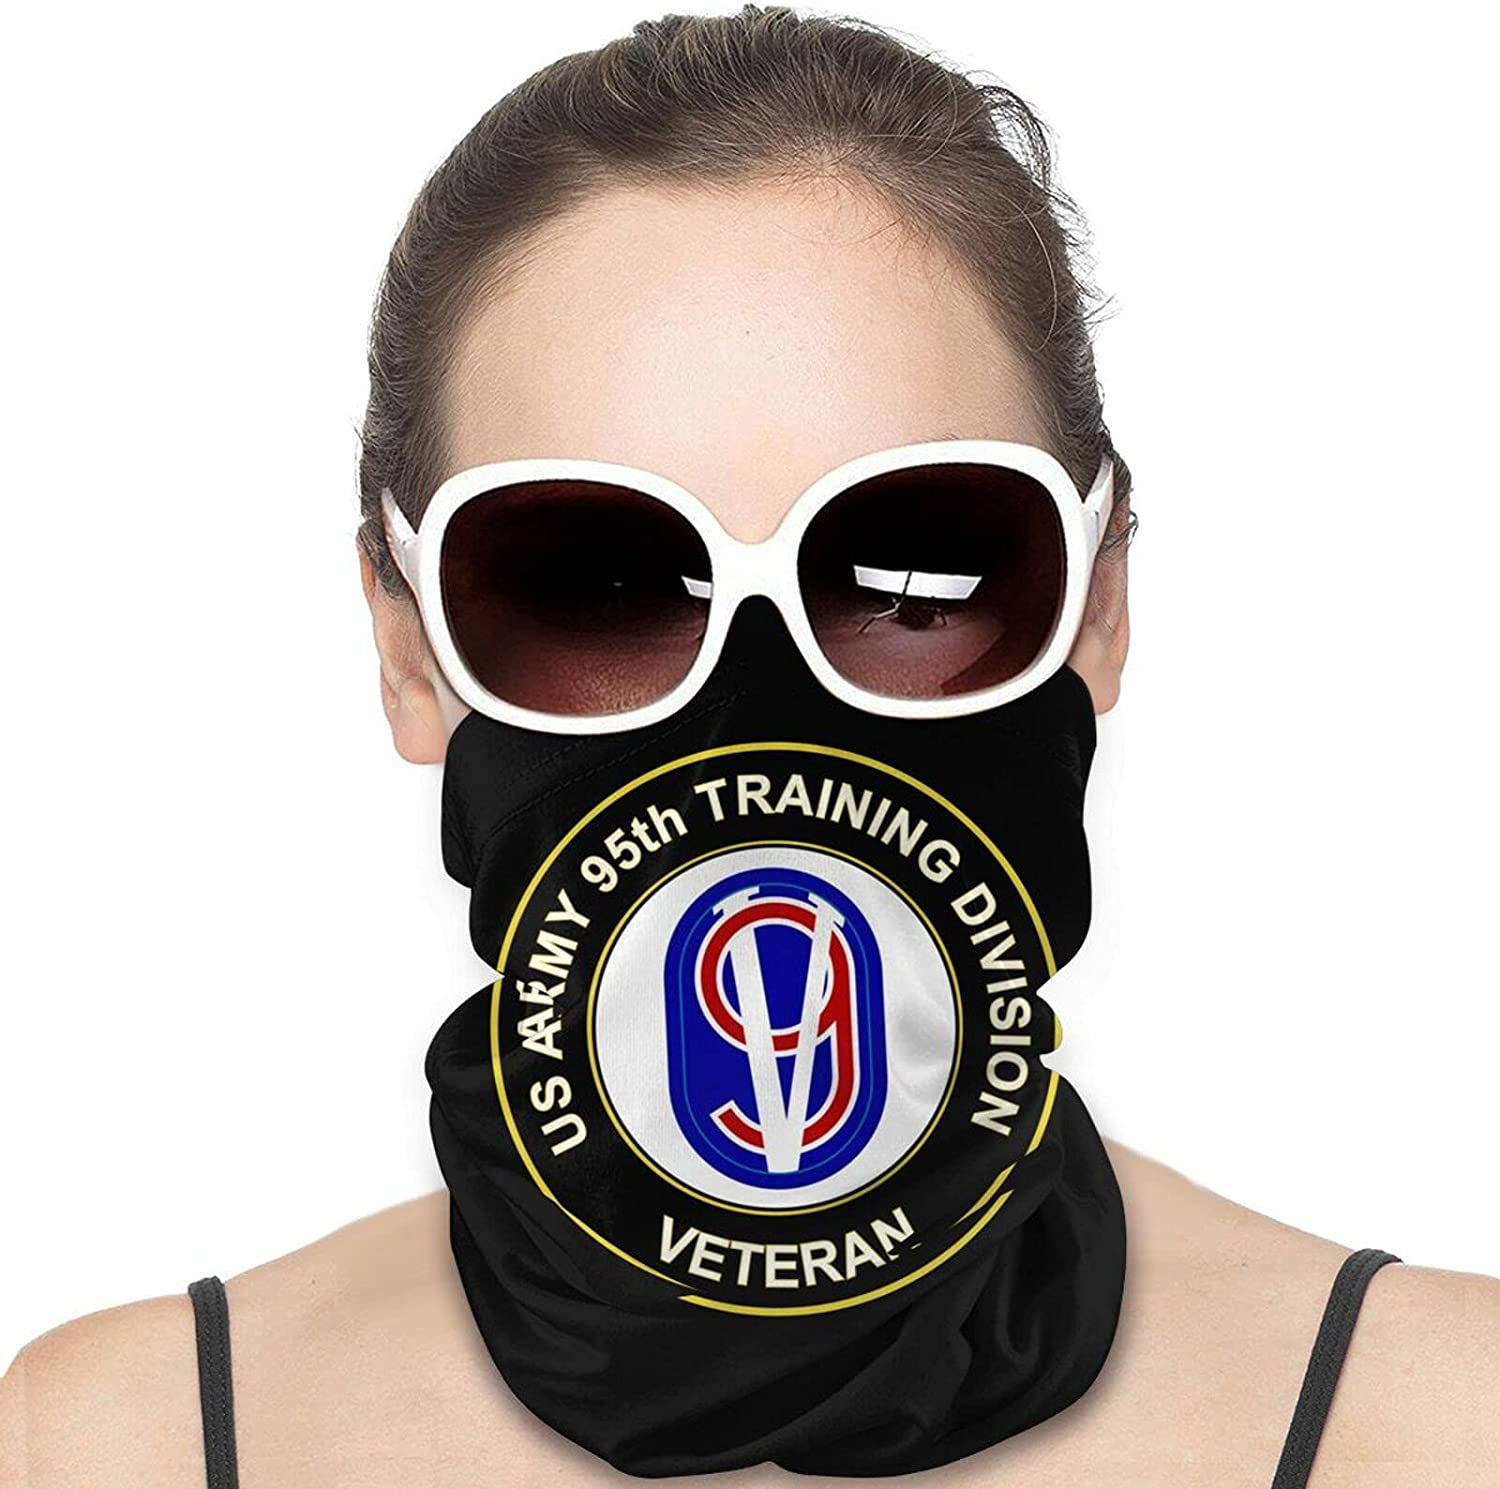 U.S. Army Veteran 95TH TRAINING DIVISION Round Neck Gaiter Bandnas Face Cover Uv Protection Prevent bask in Ice Scarf Headbands Perfect for Motorcycle Cycling Running Festival Raves Outdoors